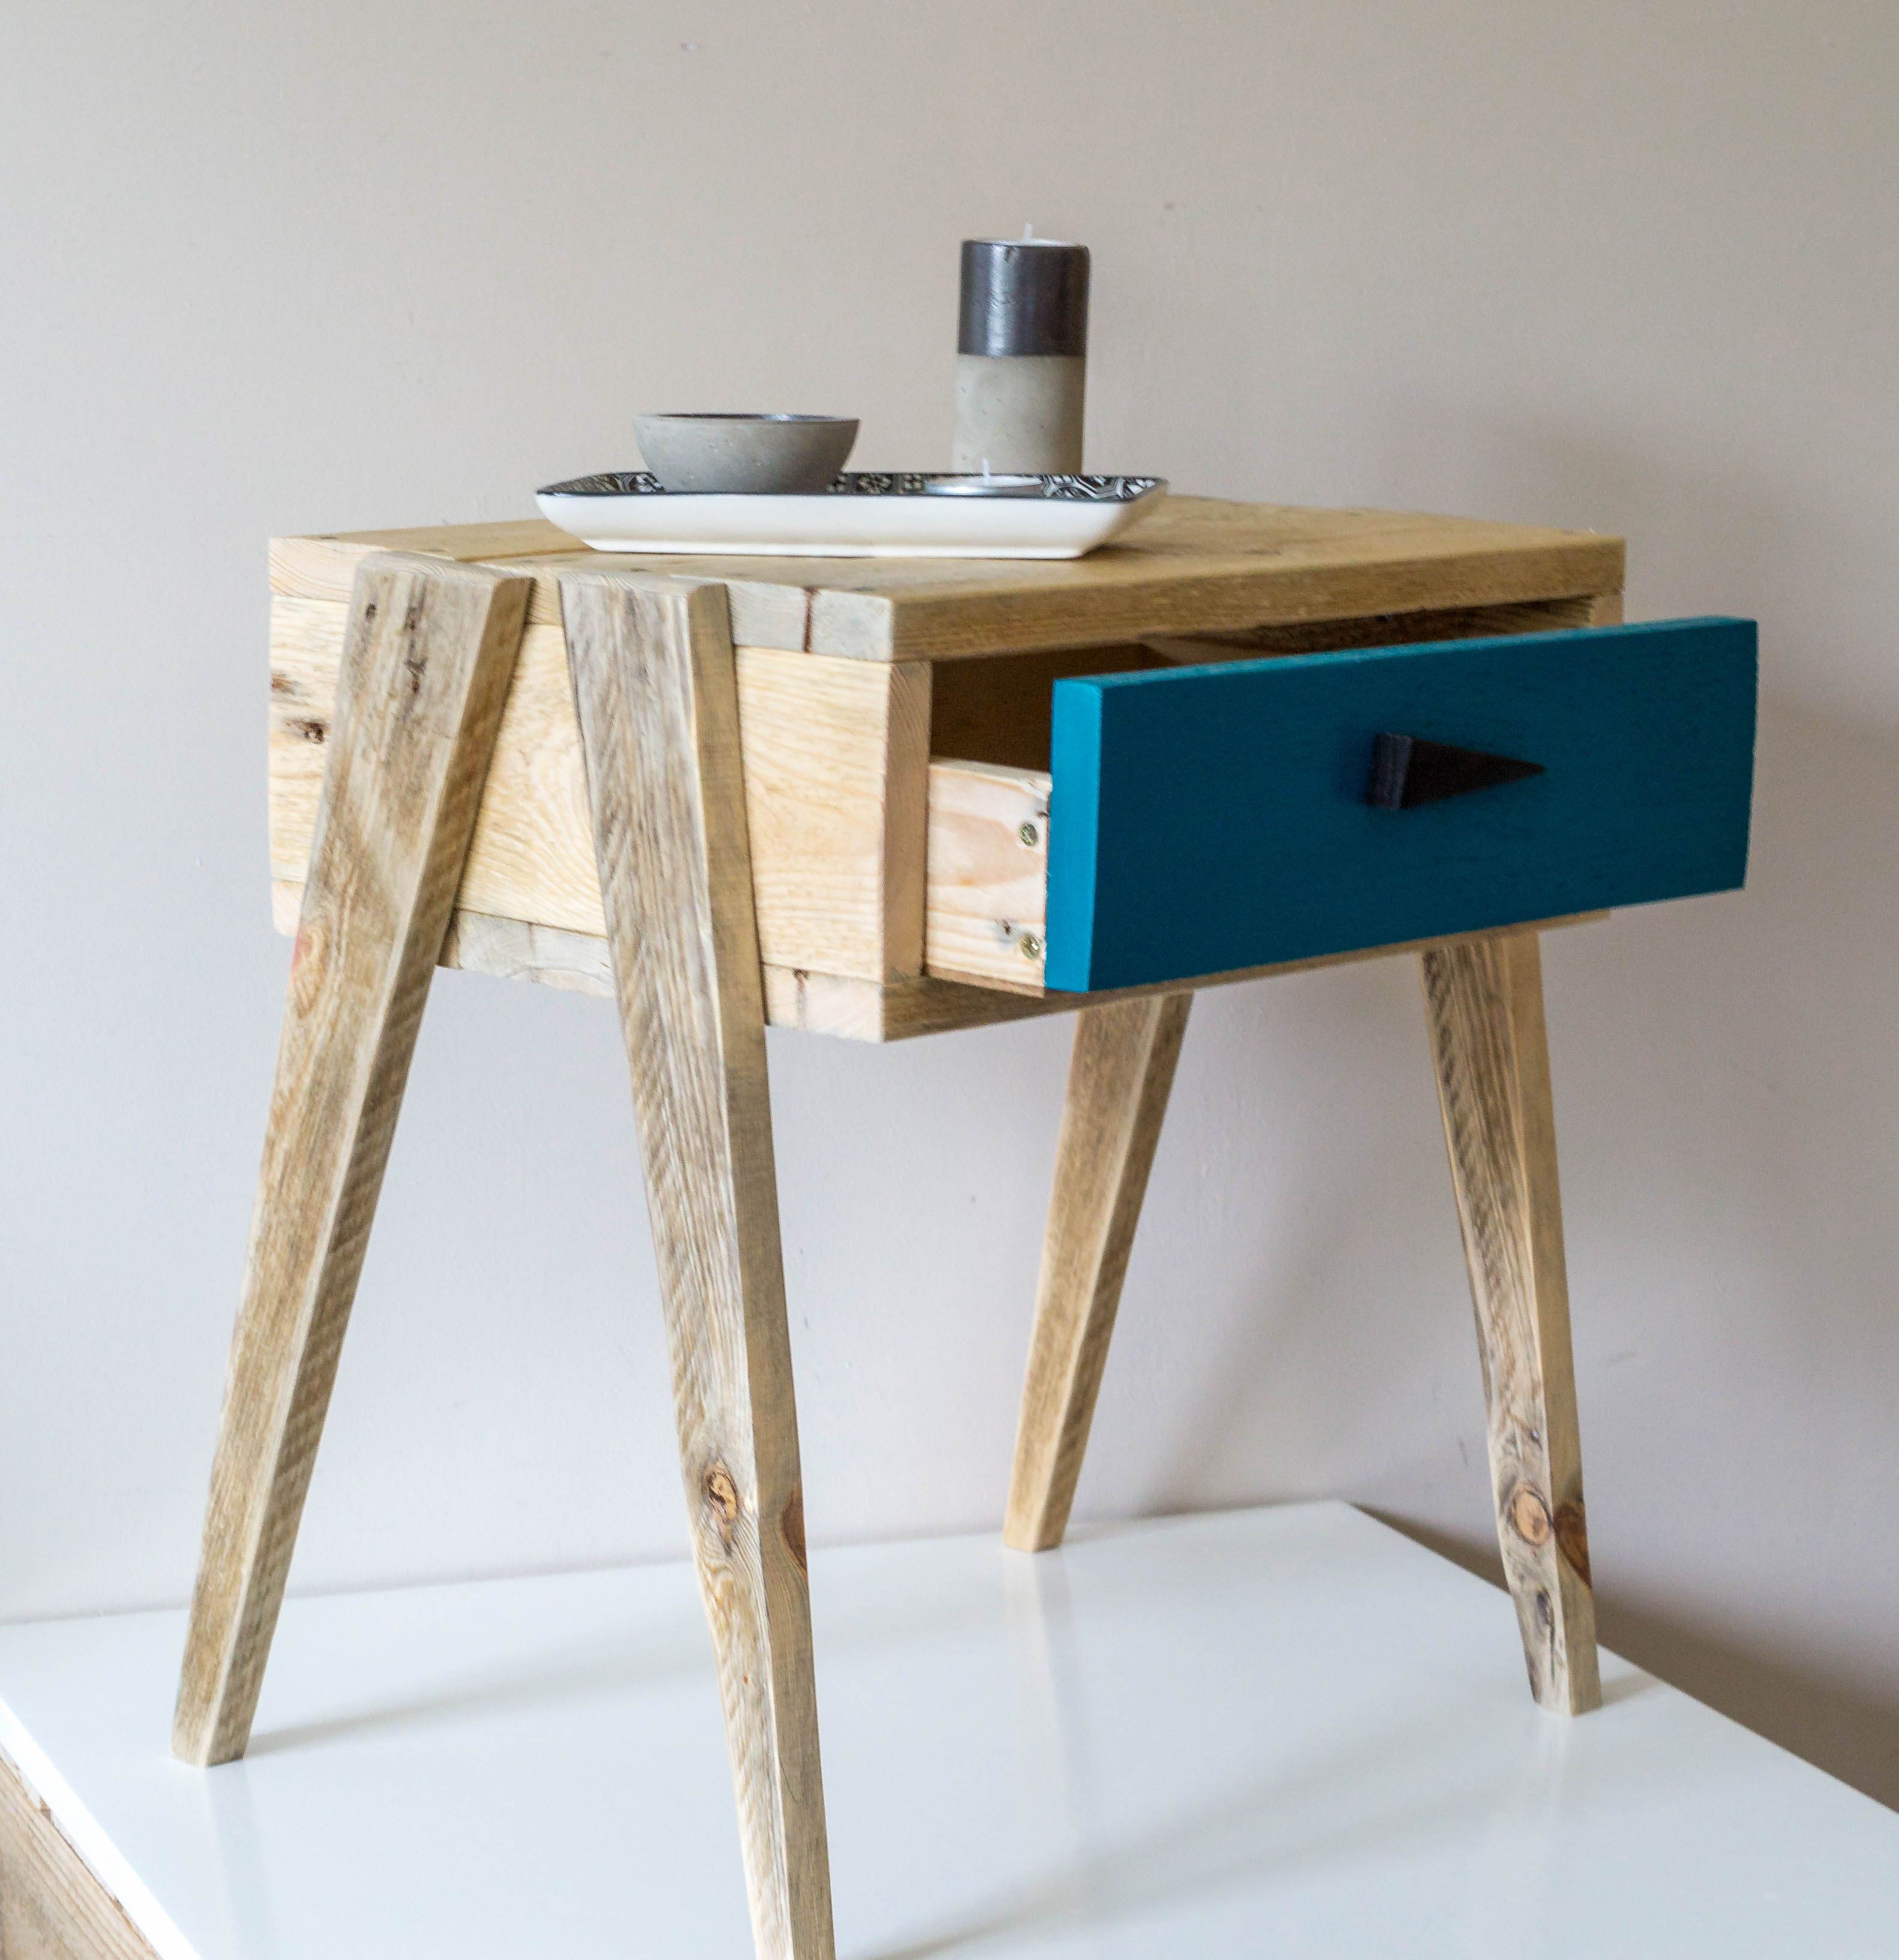 Chevet En Palette Bois night table, wooden nights table, recycled wood night table